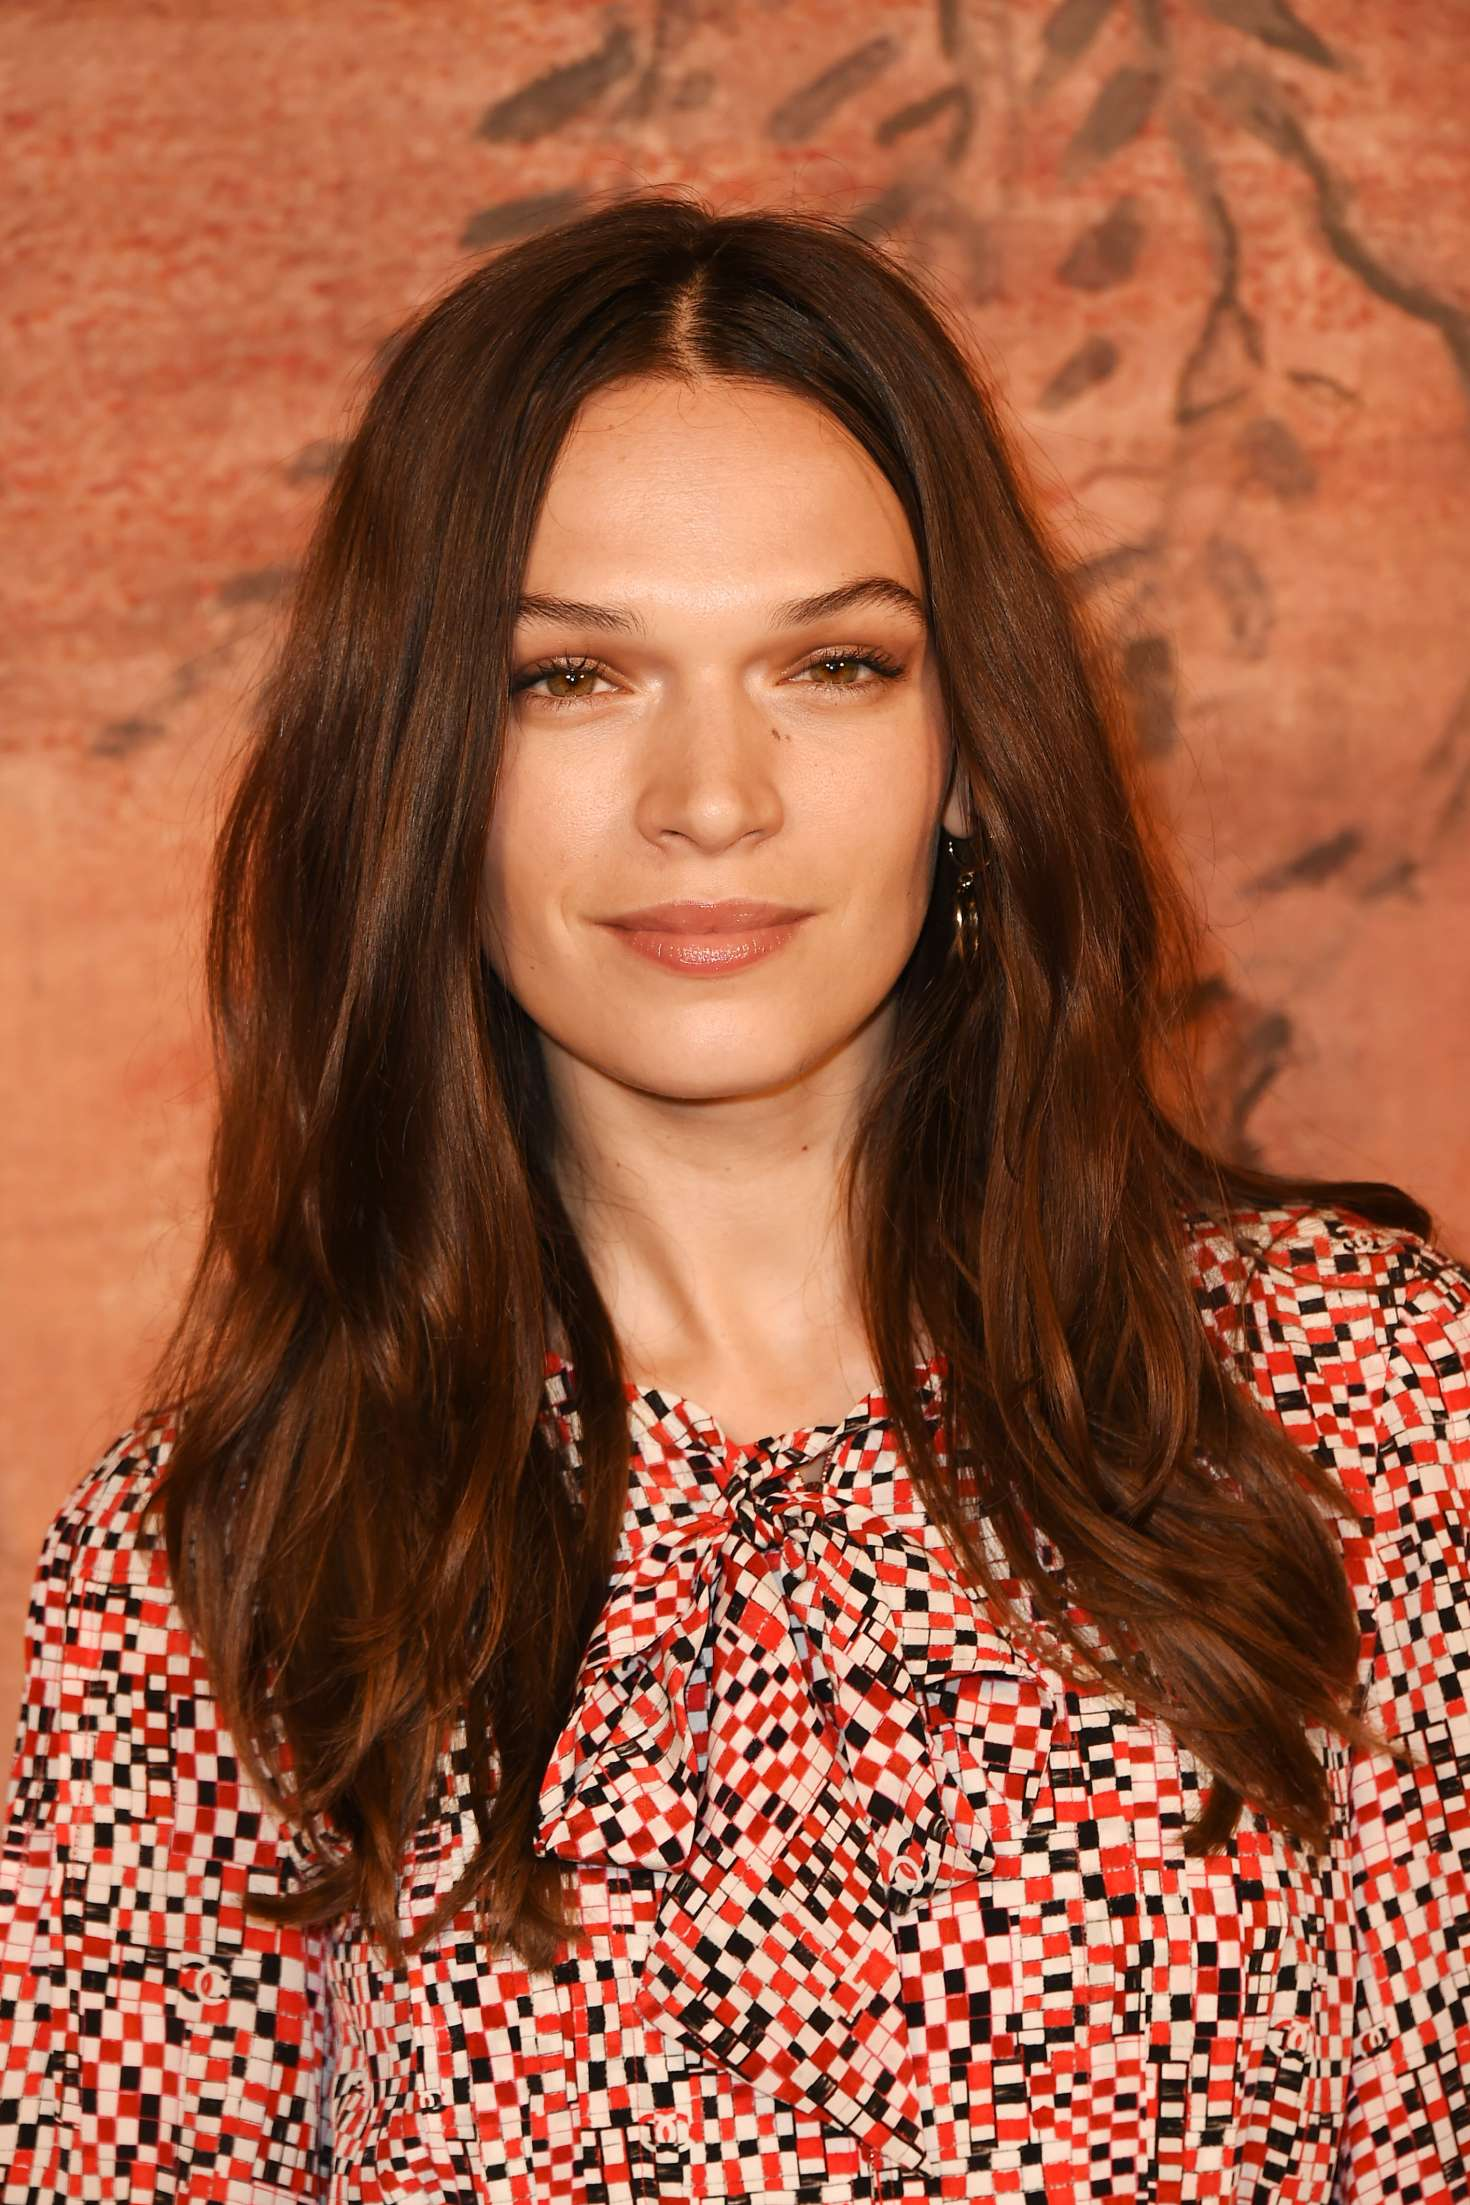 Anna Brewster nude (12 photos), Topless, Fappening, Feet, braless 2015